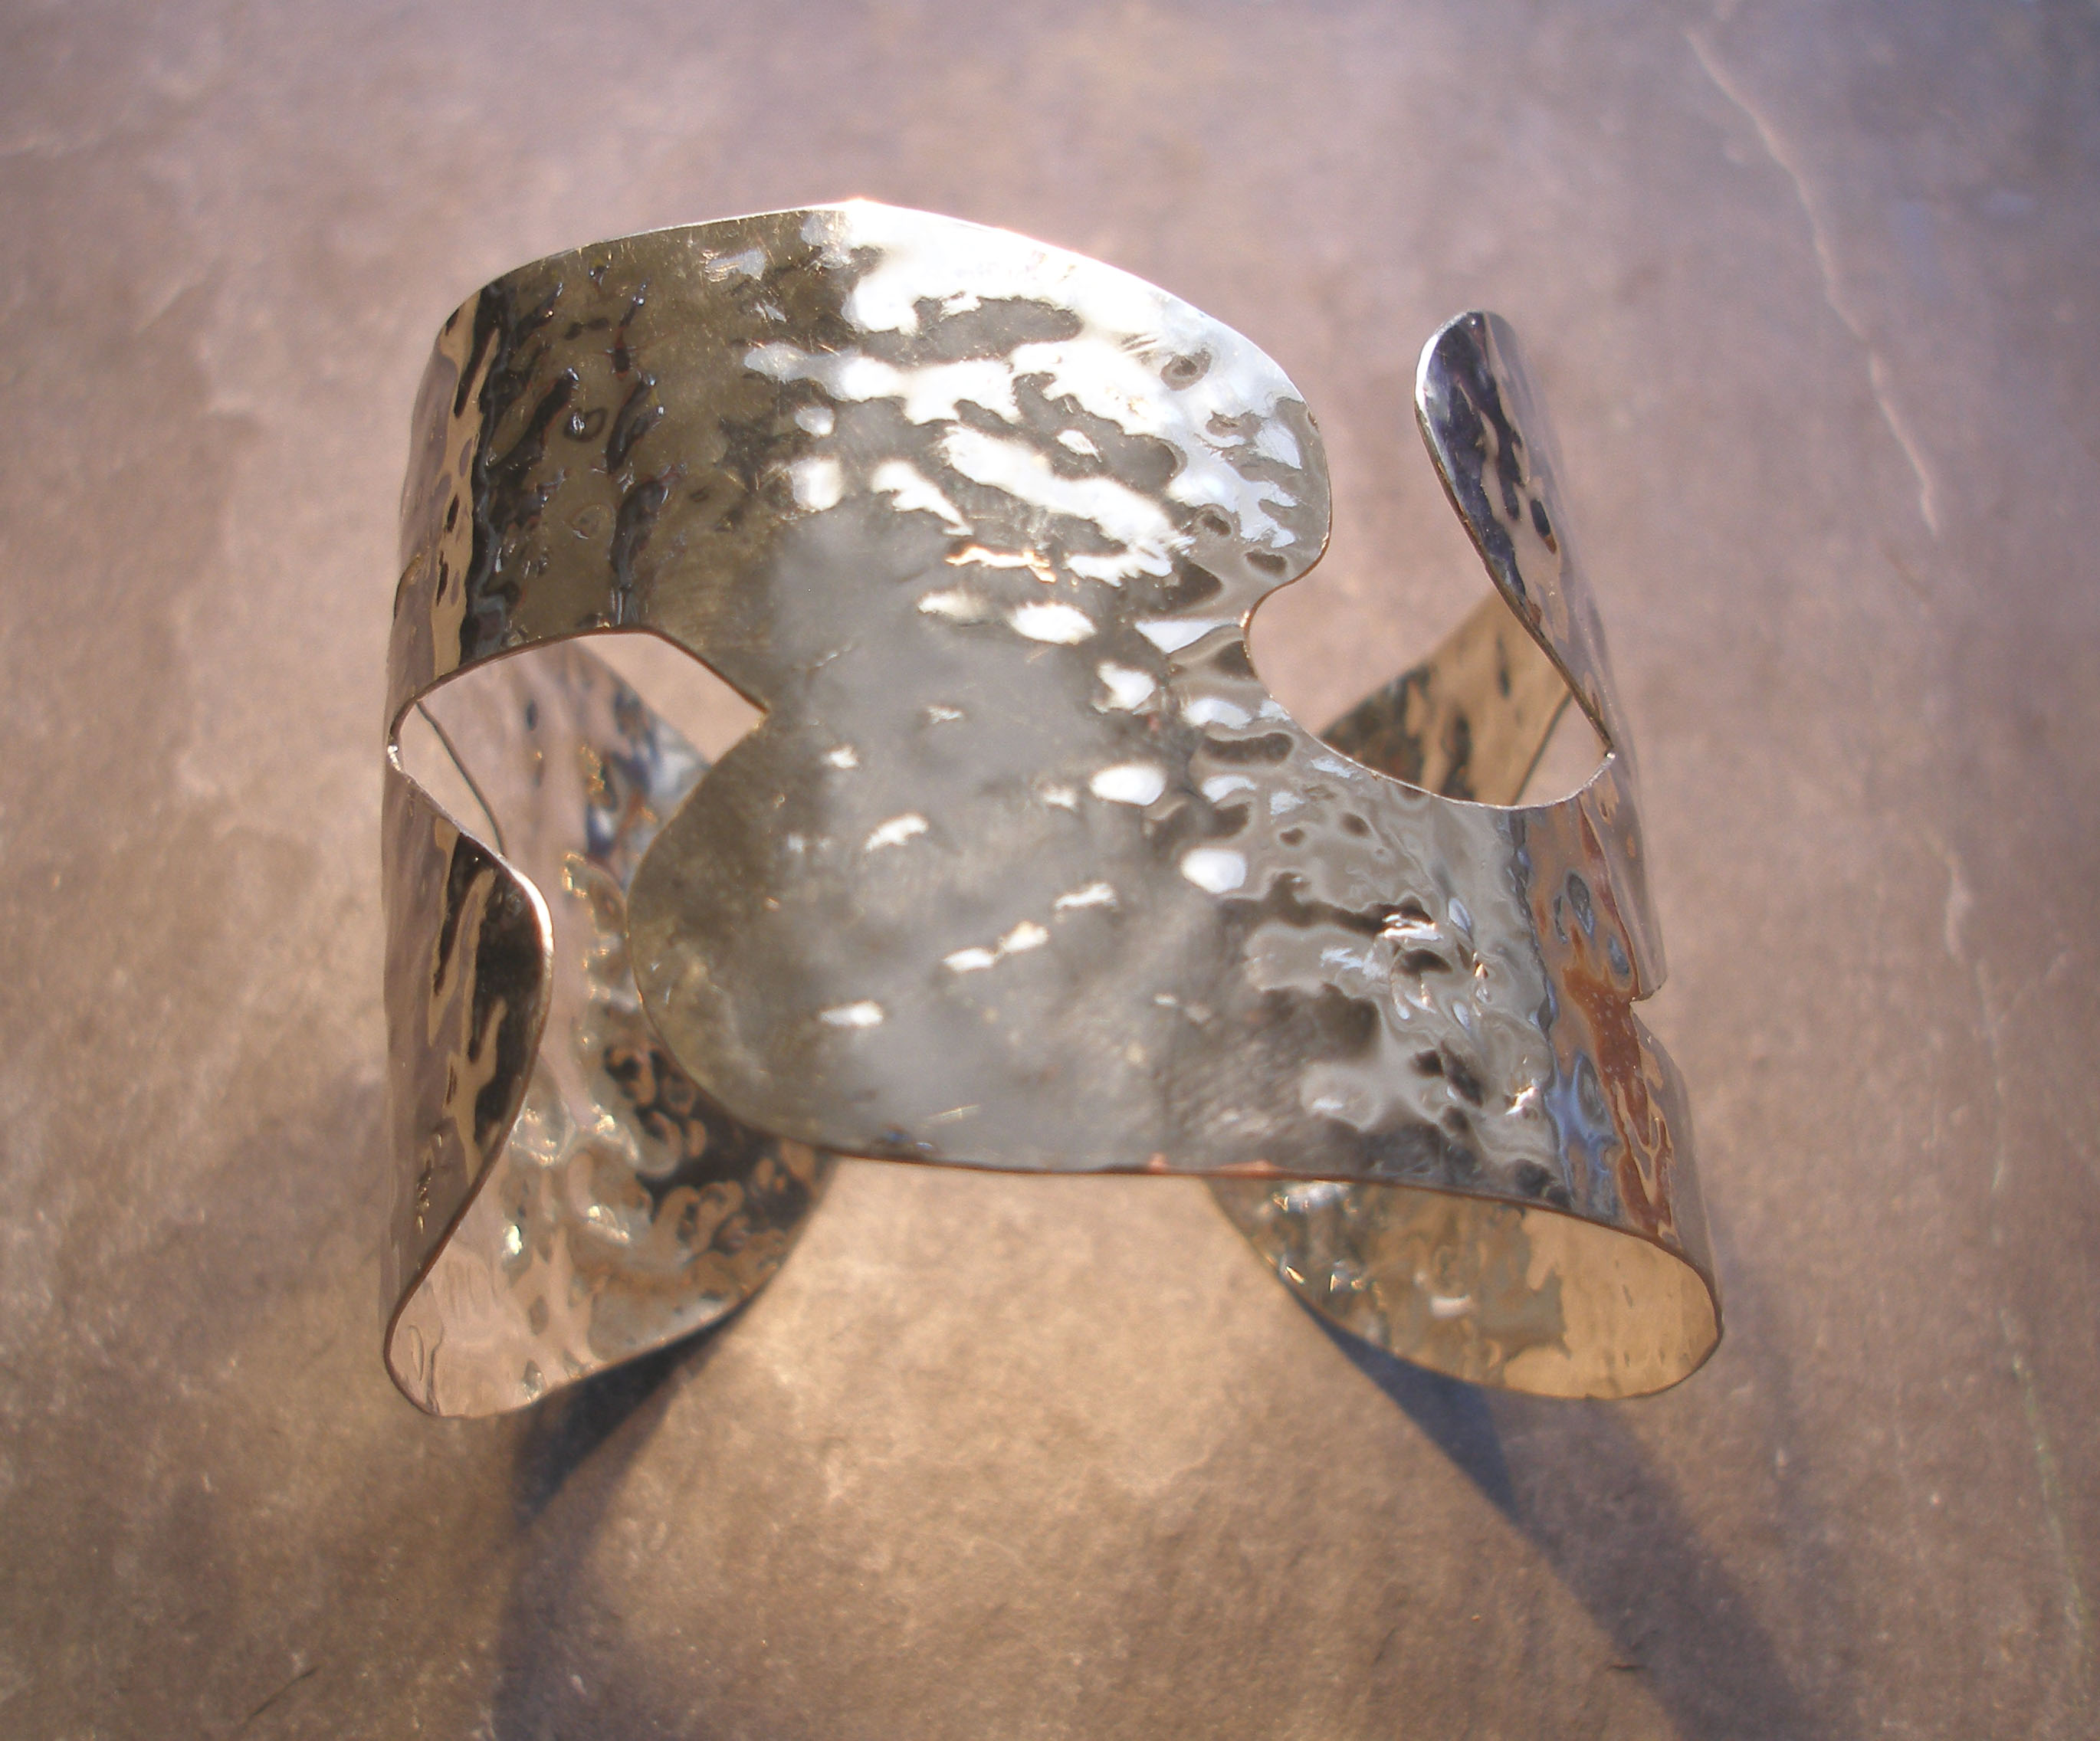 Curvy Hammered Silver Cuff Bangle